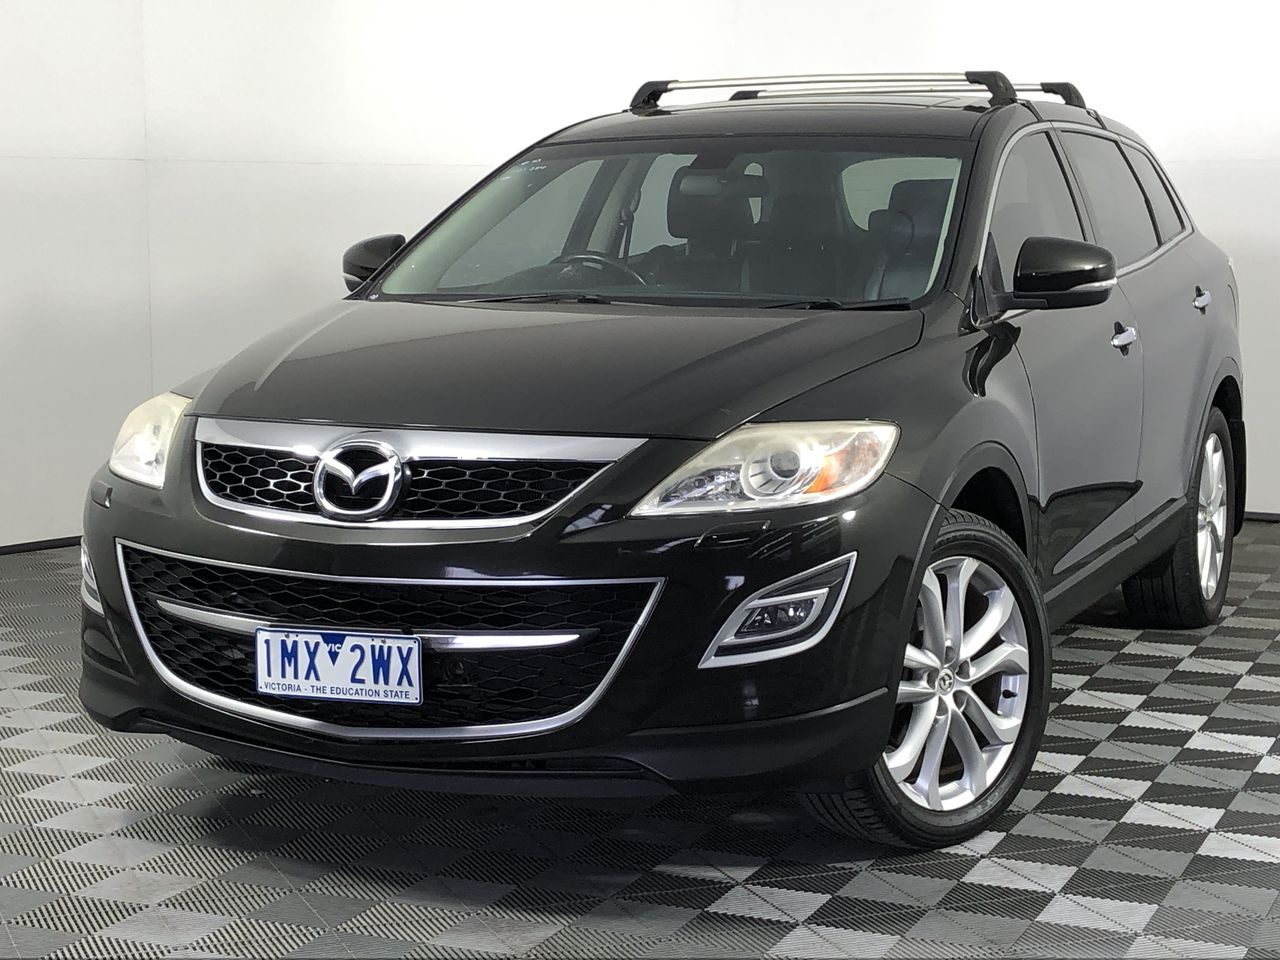 2011 Mazda CX-9 Grand Touring Auto 7 Seats, RWC issued 17/02/2020